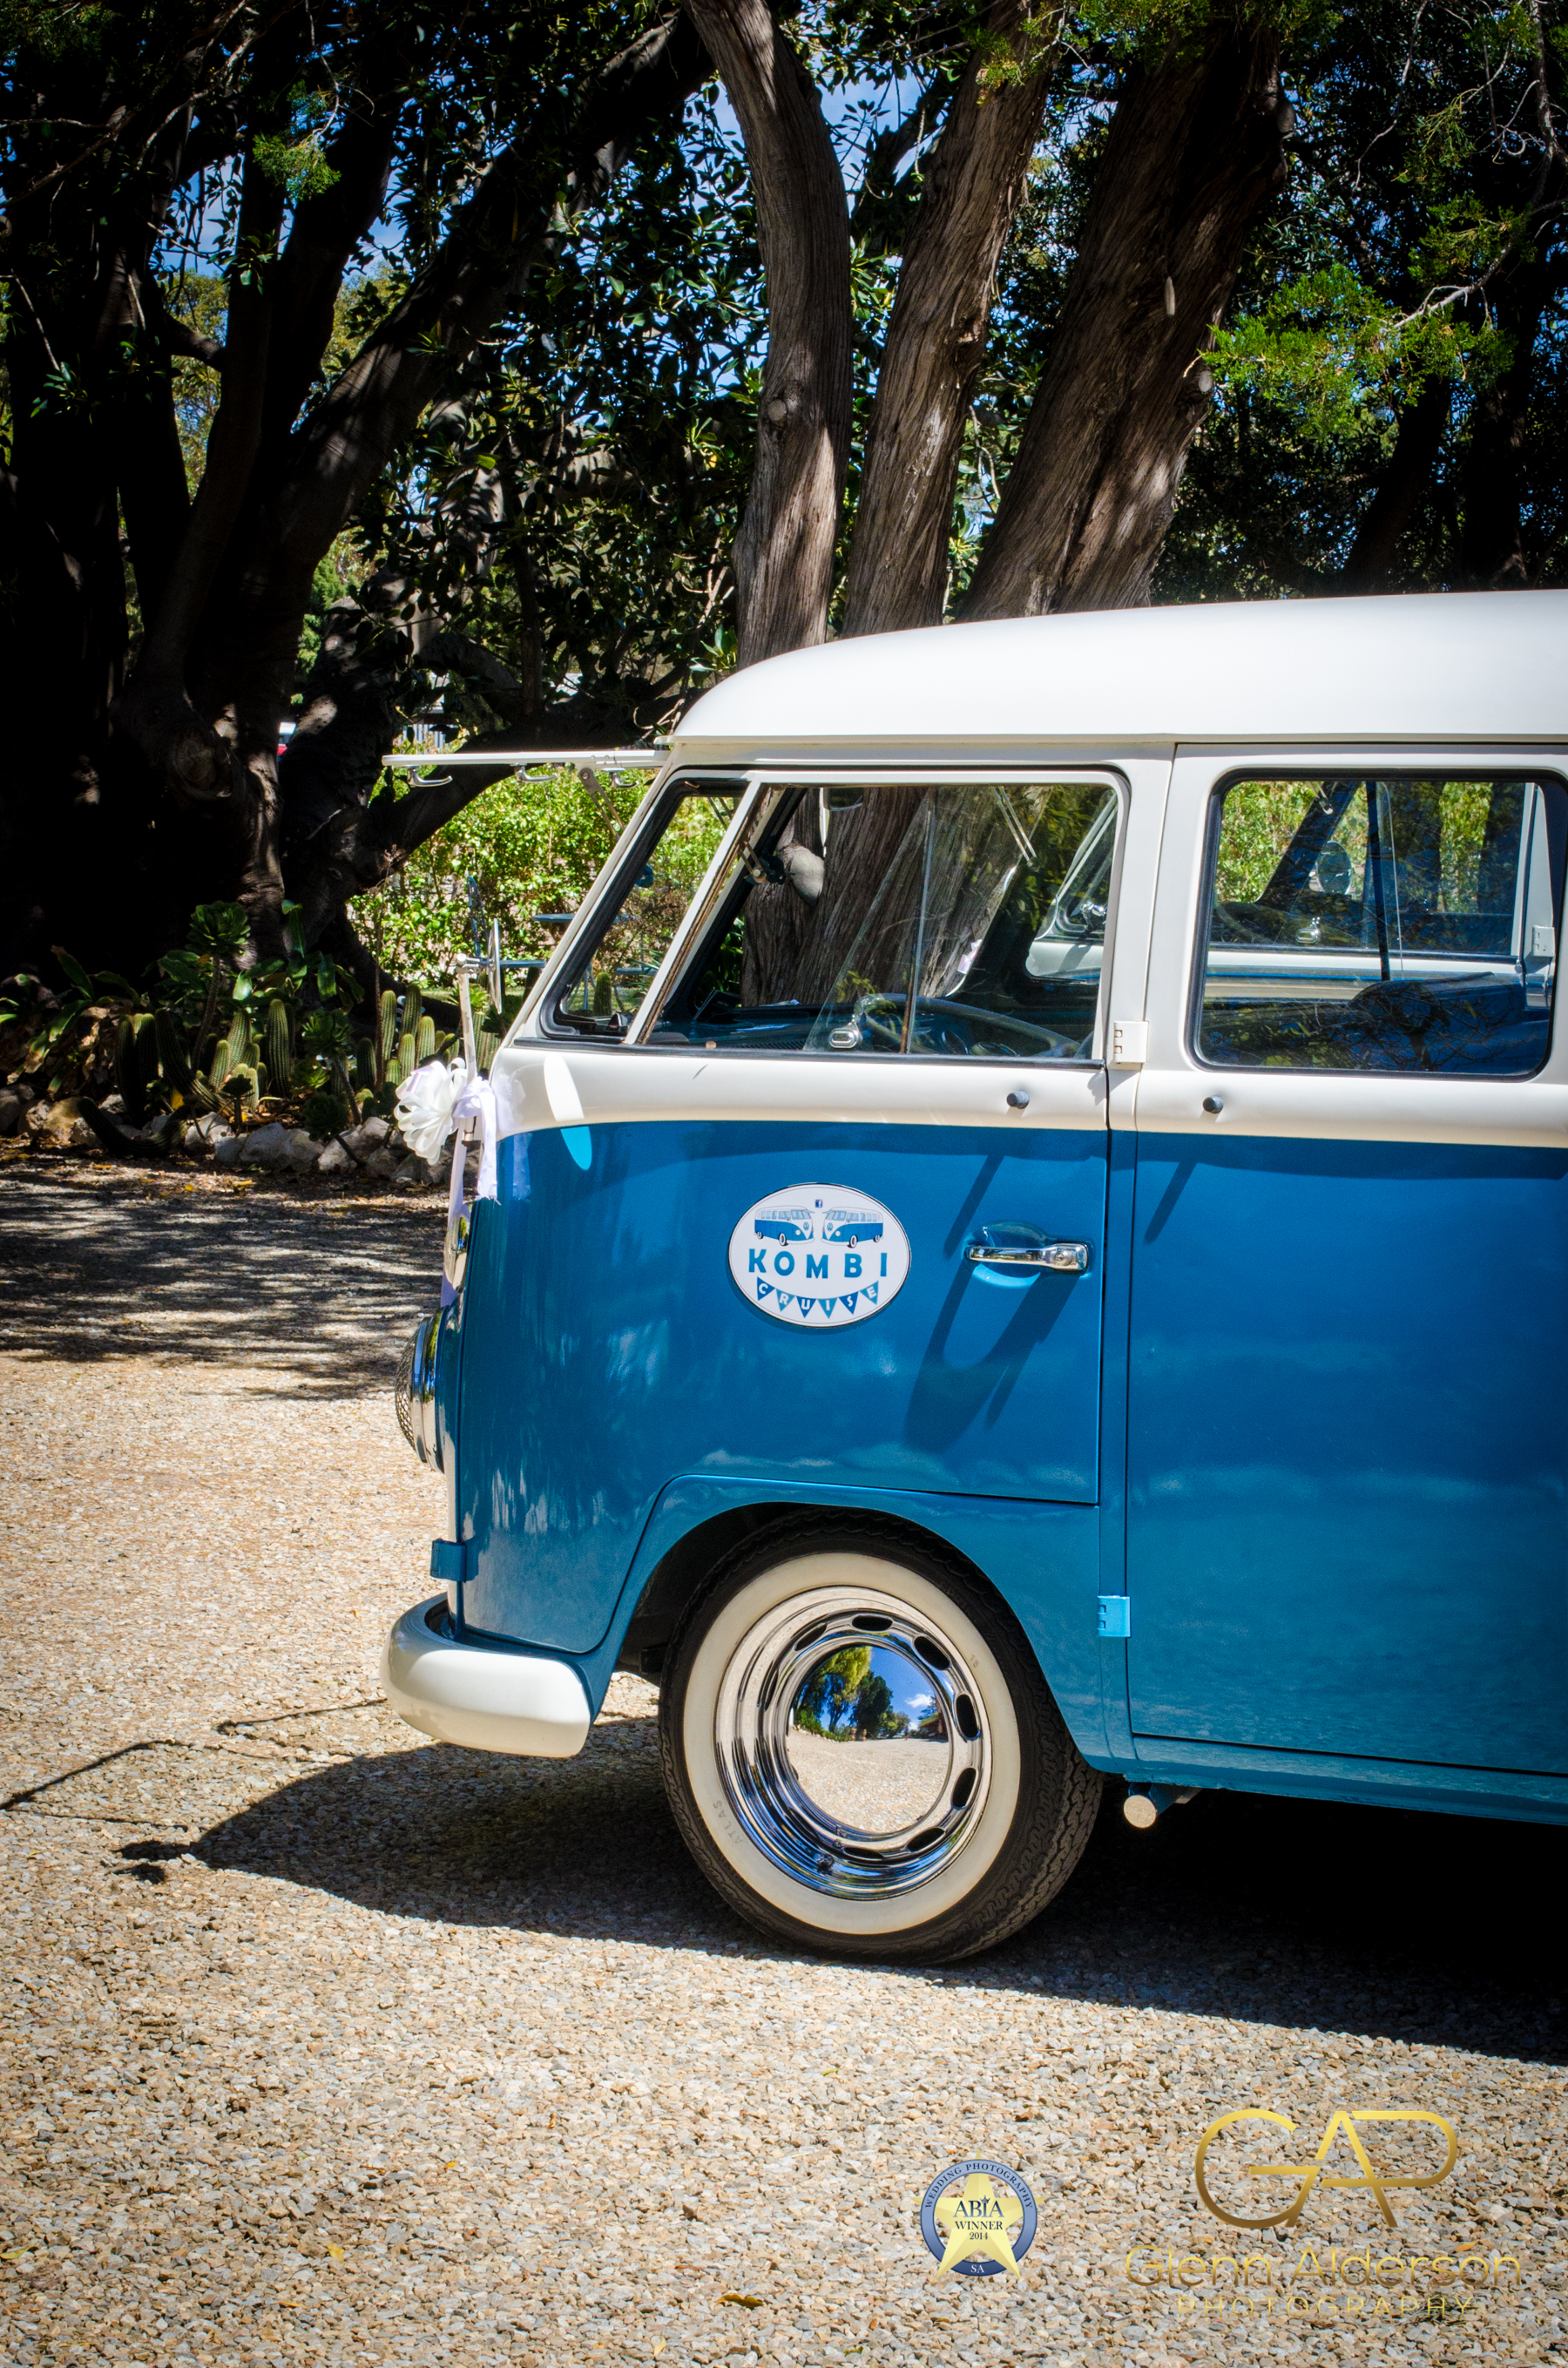 Kombi Cruse WM (4 of 8)